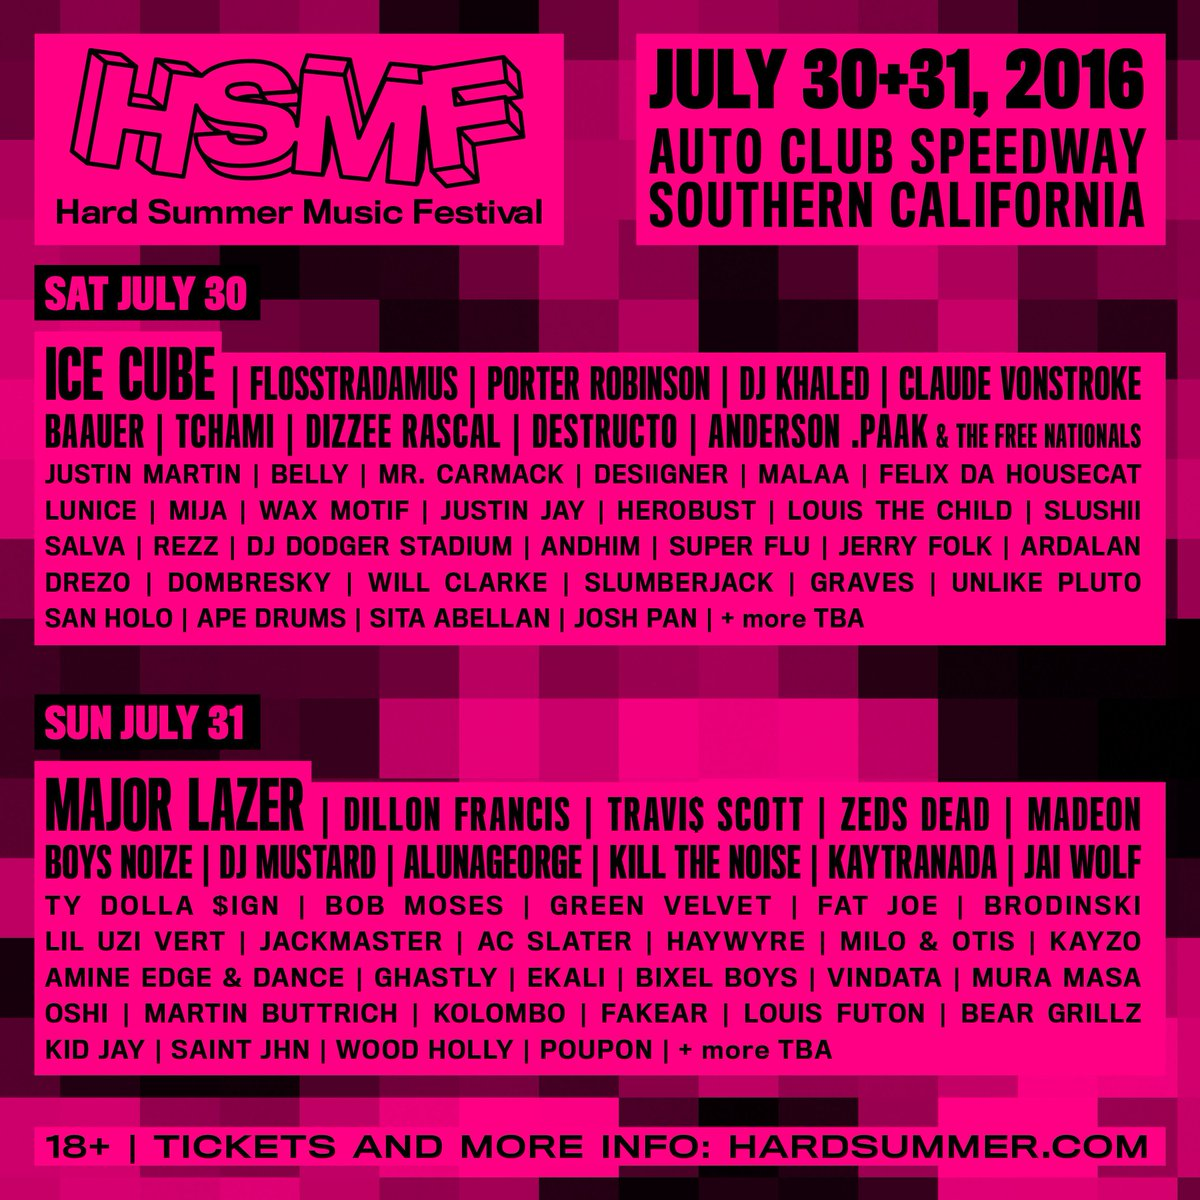 #HARDSUMMER    Do not look at the line up.    Listen to it here :::  https://t.co/P5kXRSULZW @Spotify https://t.co/75xOV4rr9I